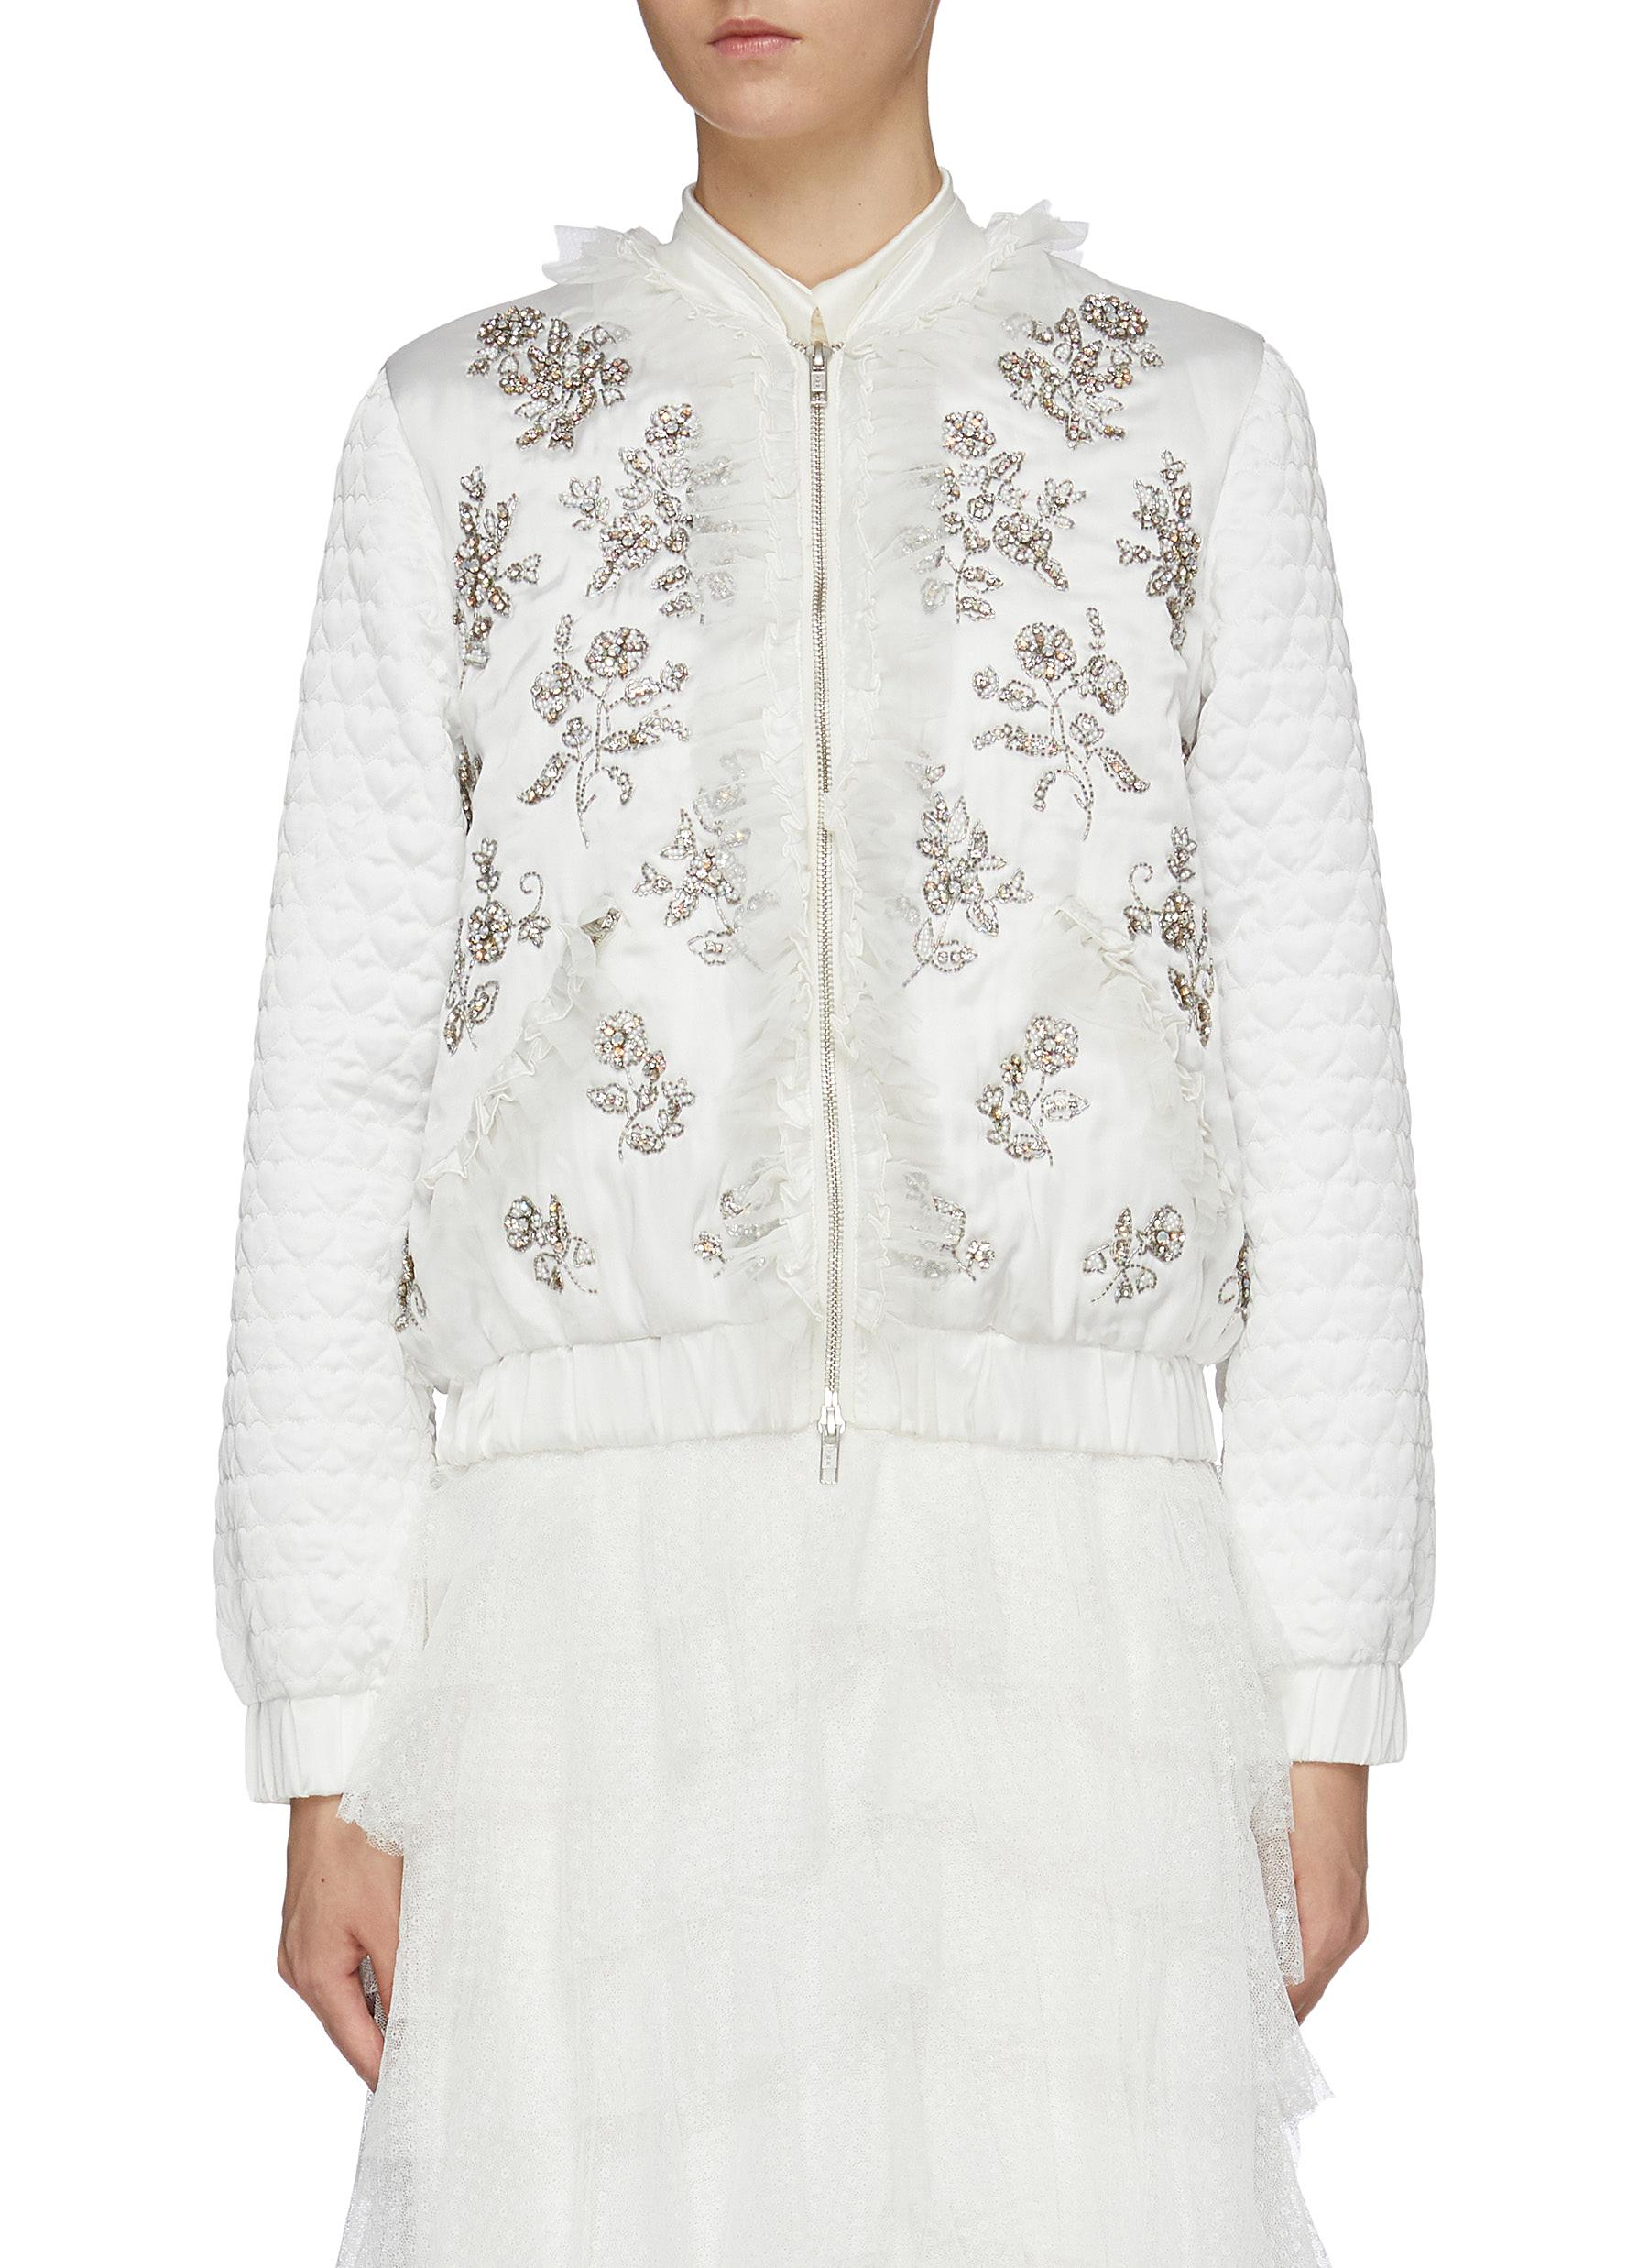 Gemstone floral embellished ruffle trim satin bomber jacket by Needle & Thread